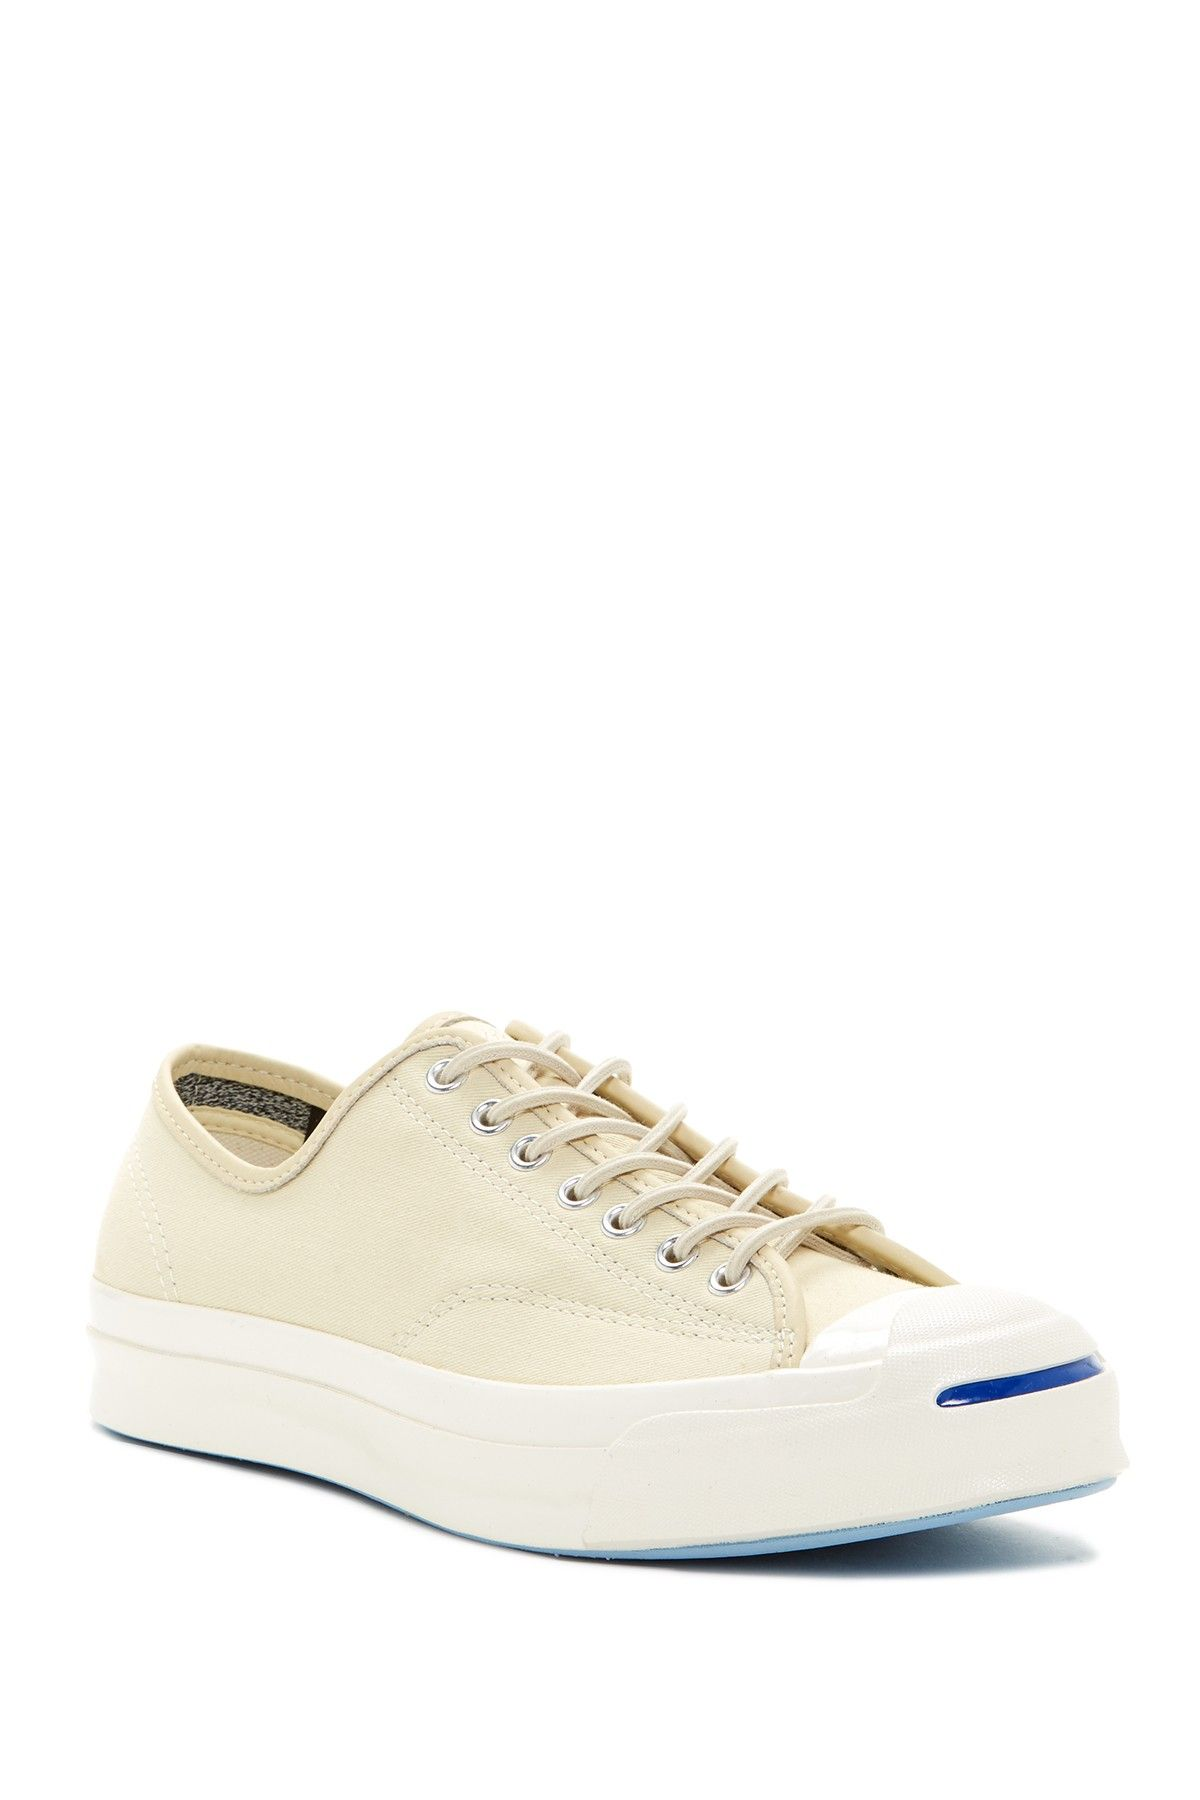 ae0f4f9a2731 Jack Purcell Signature Ox Sneaker (Unisex)